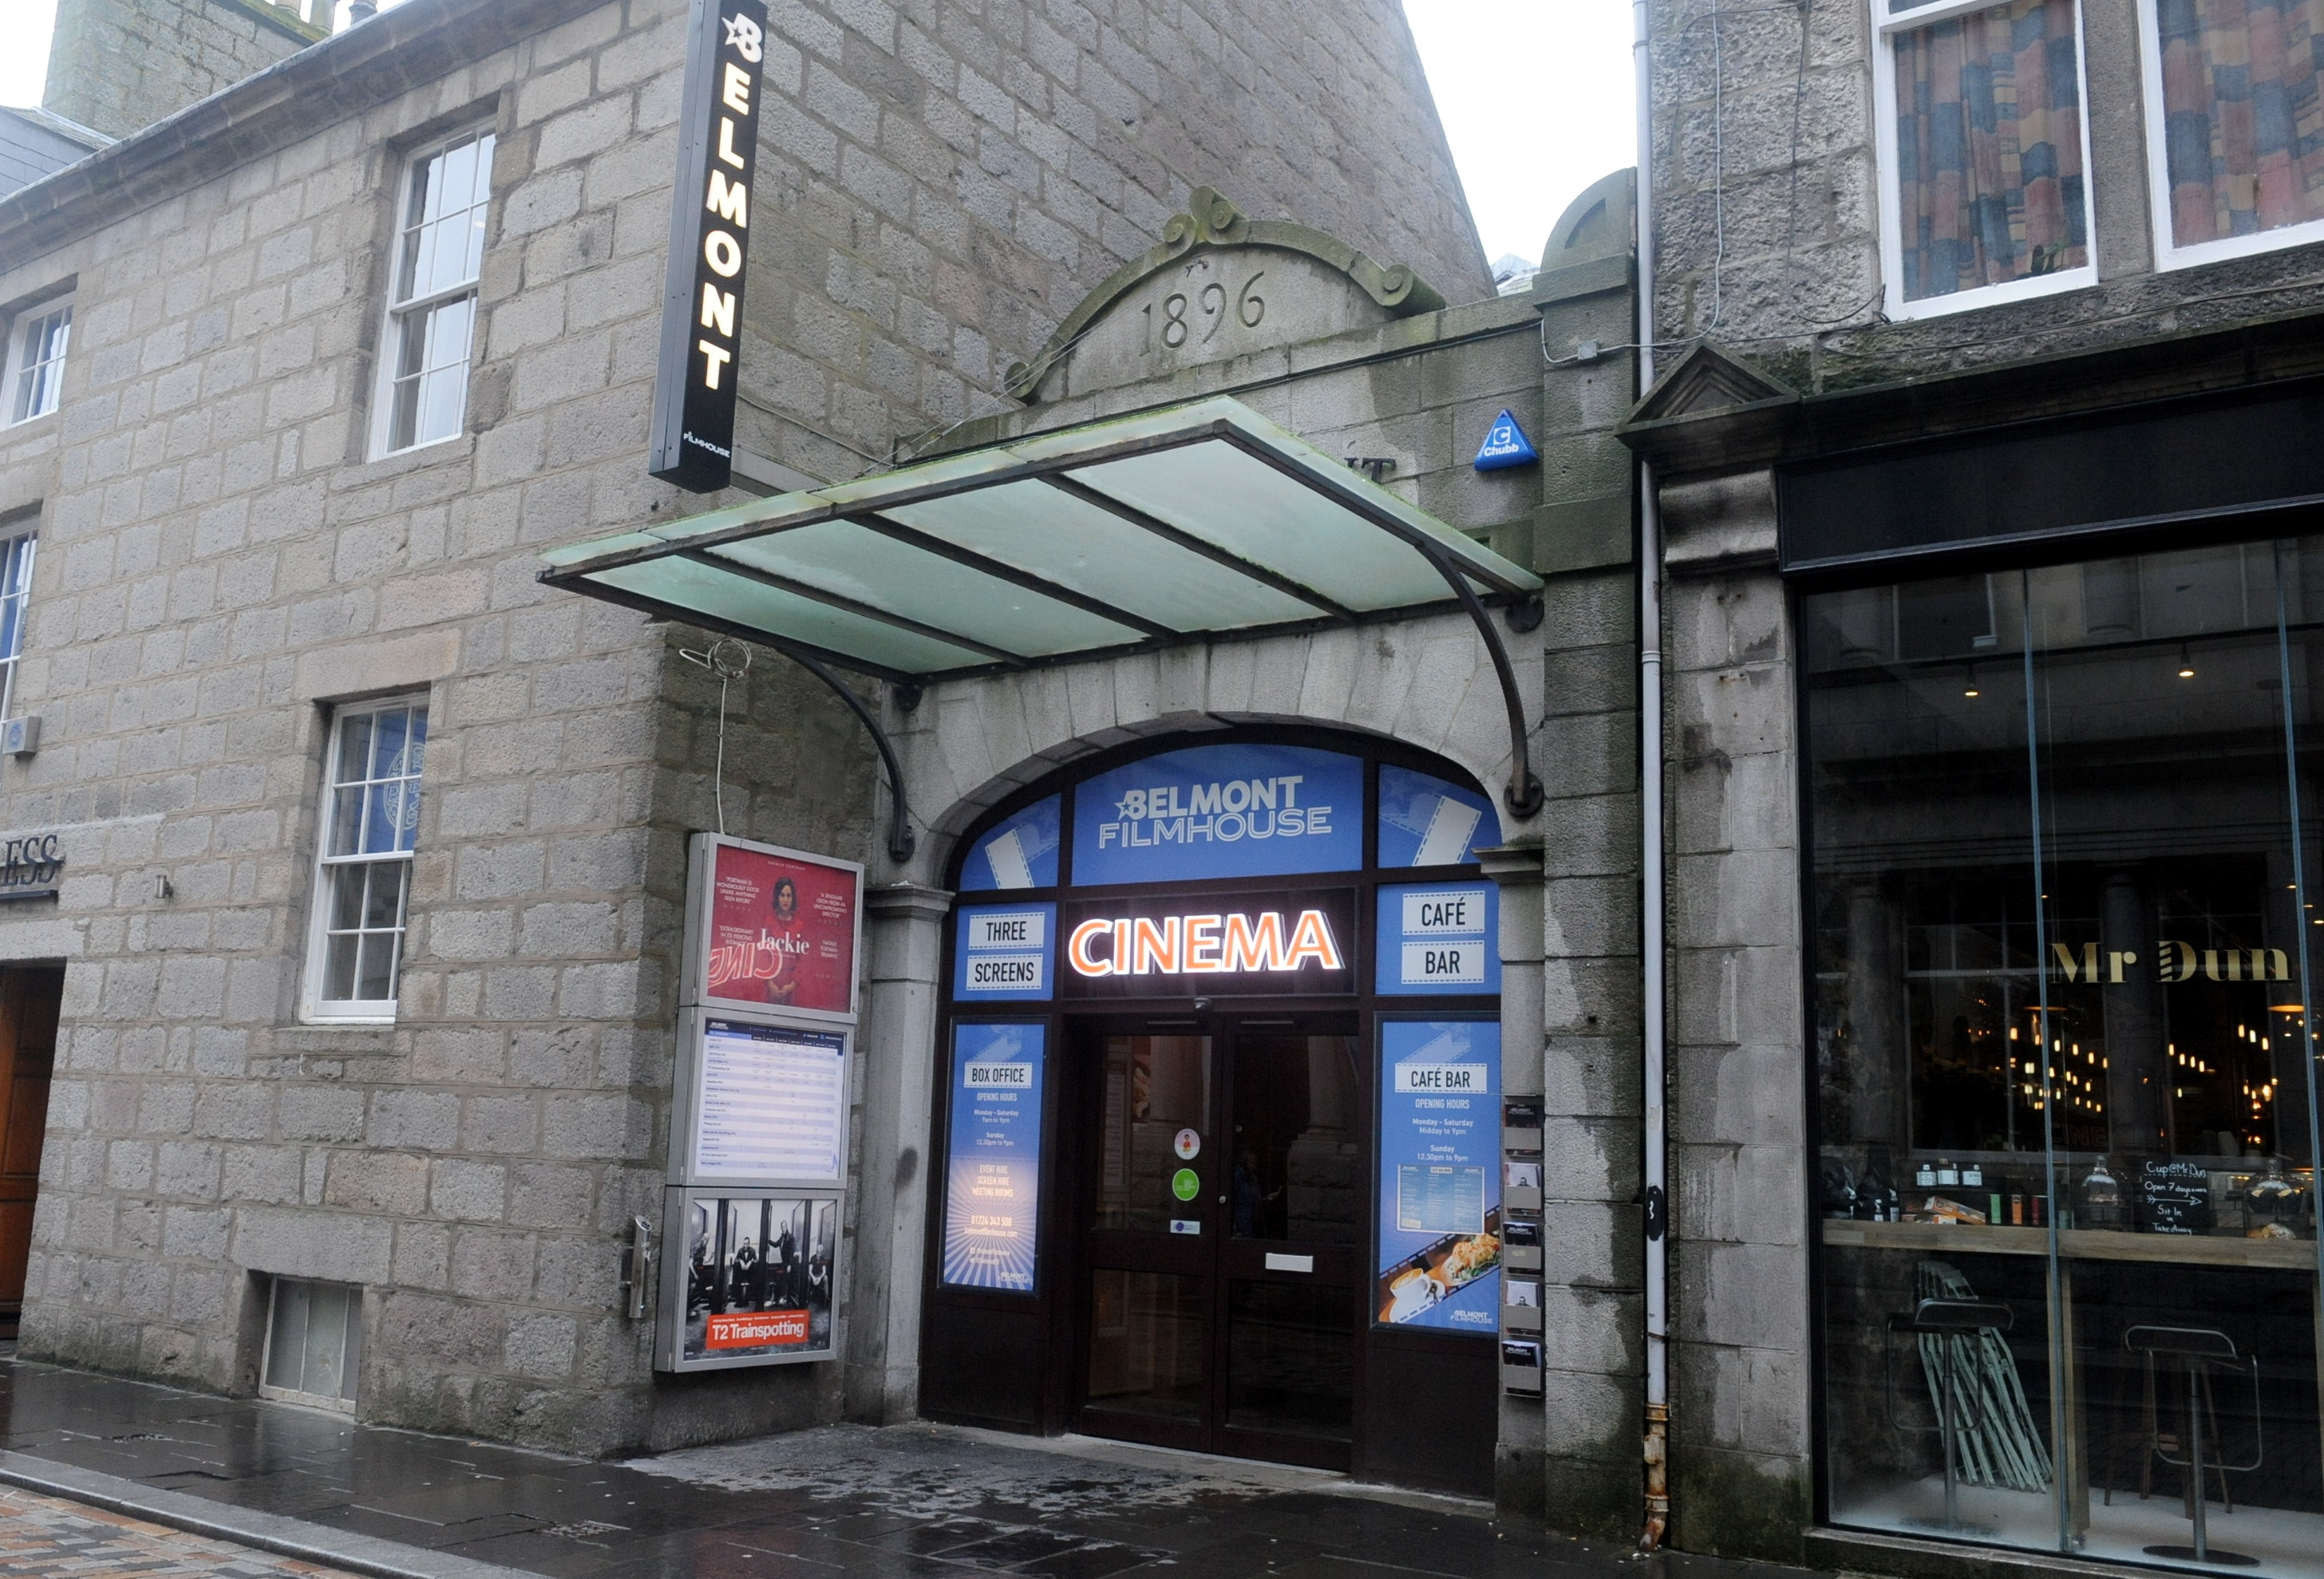 The Belmont Filmhouse